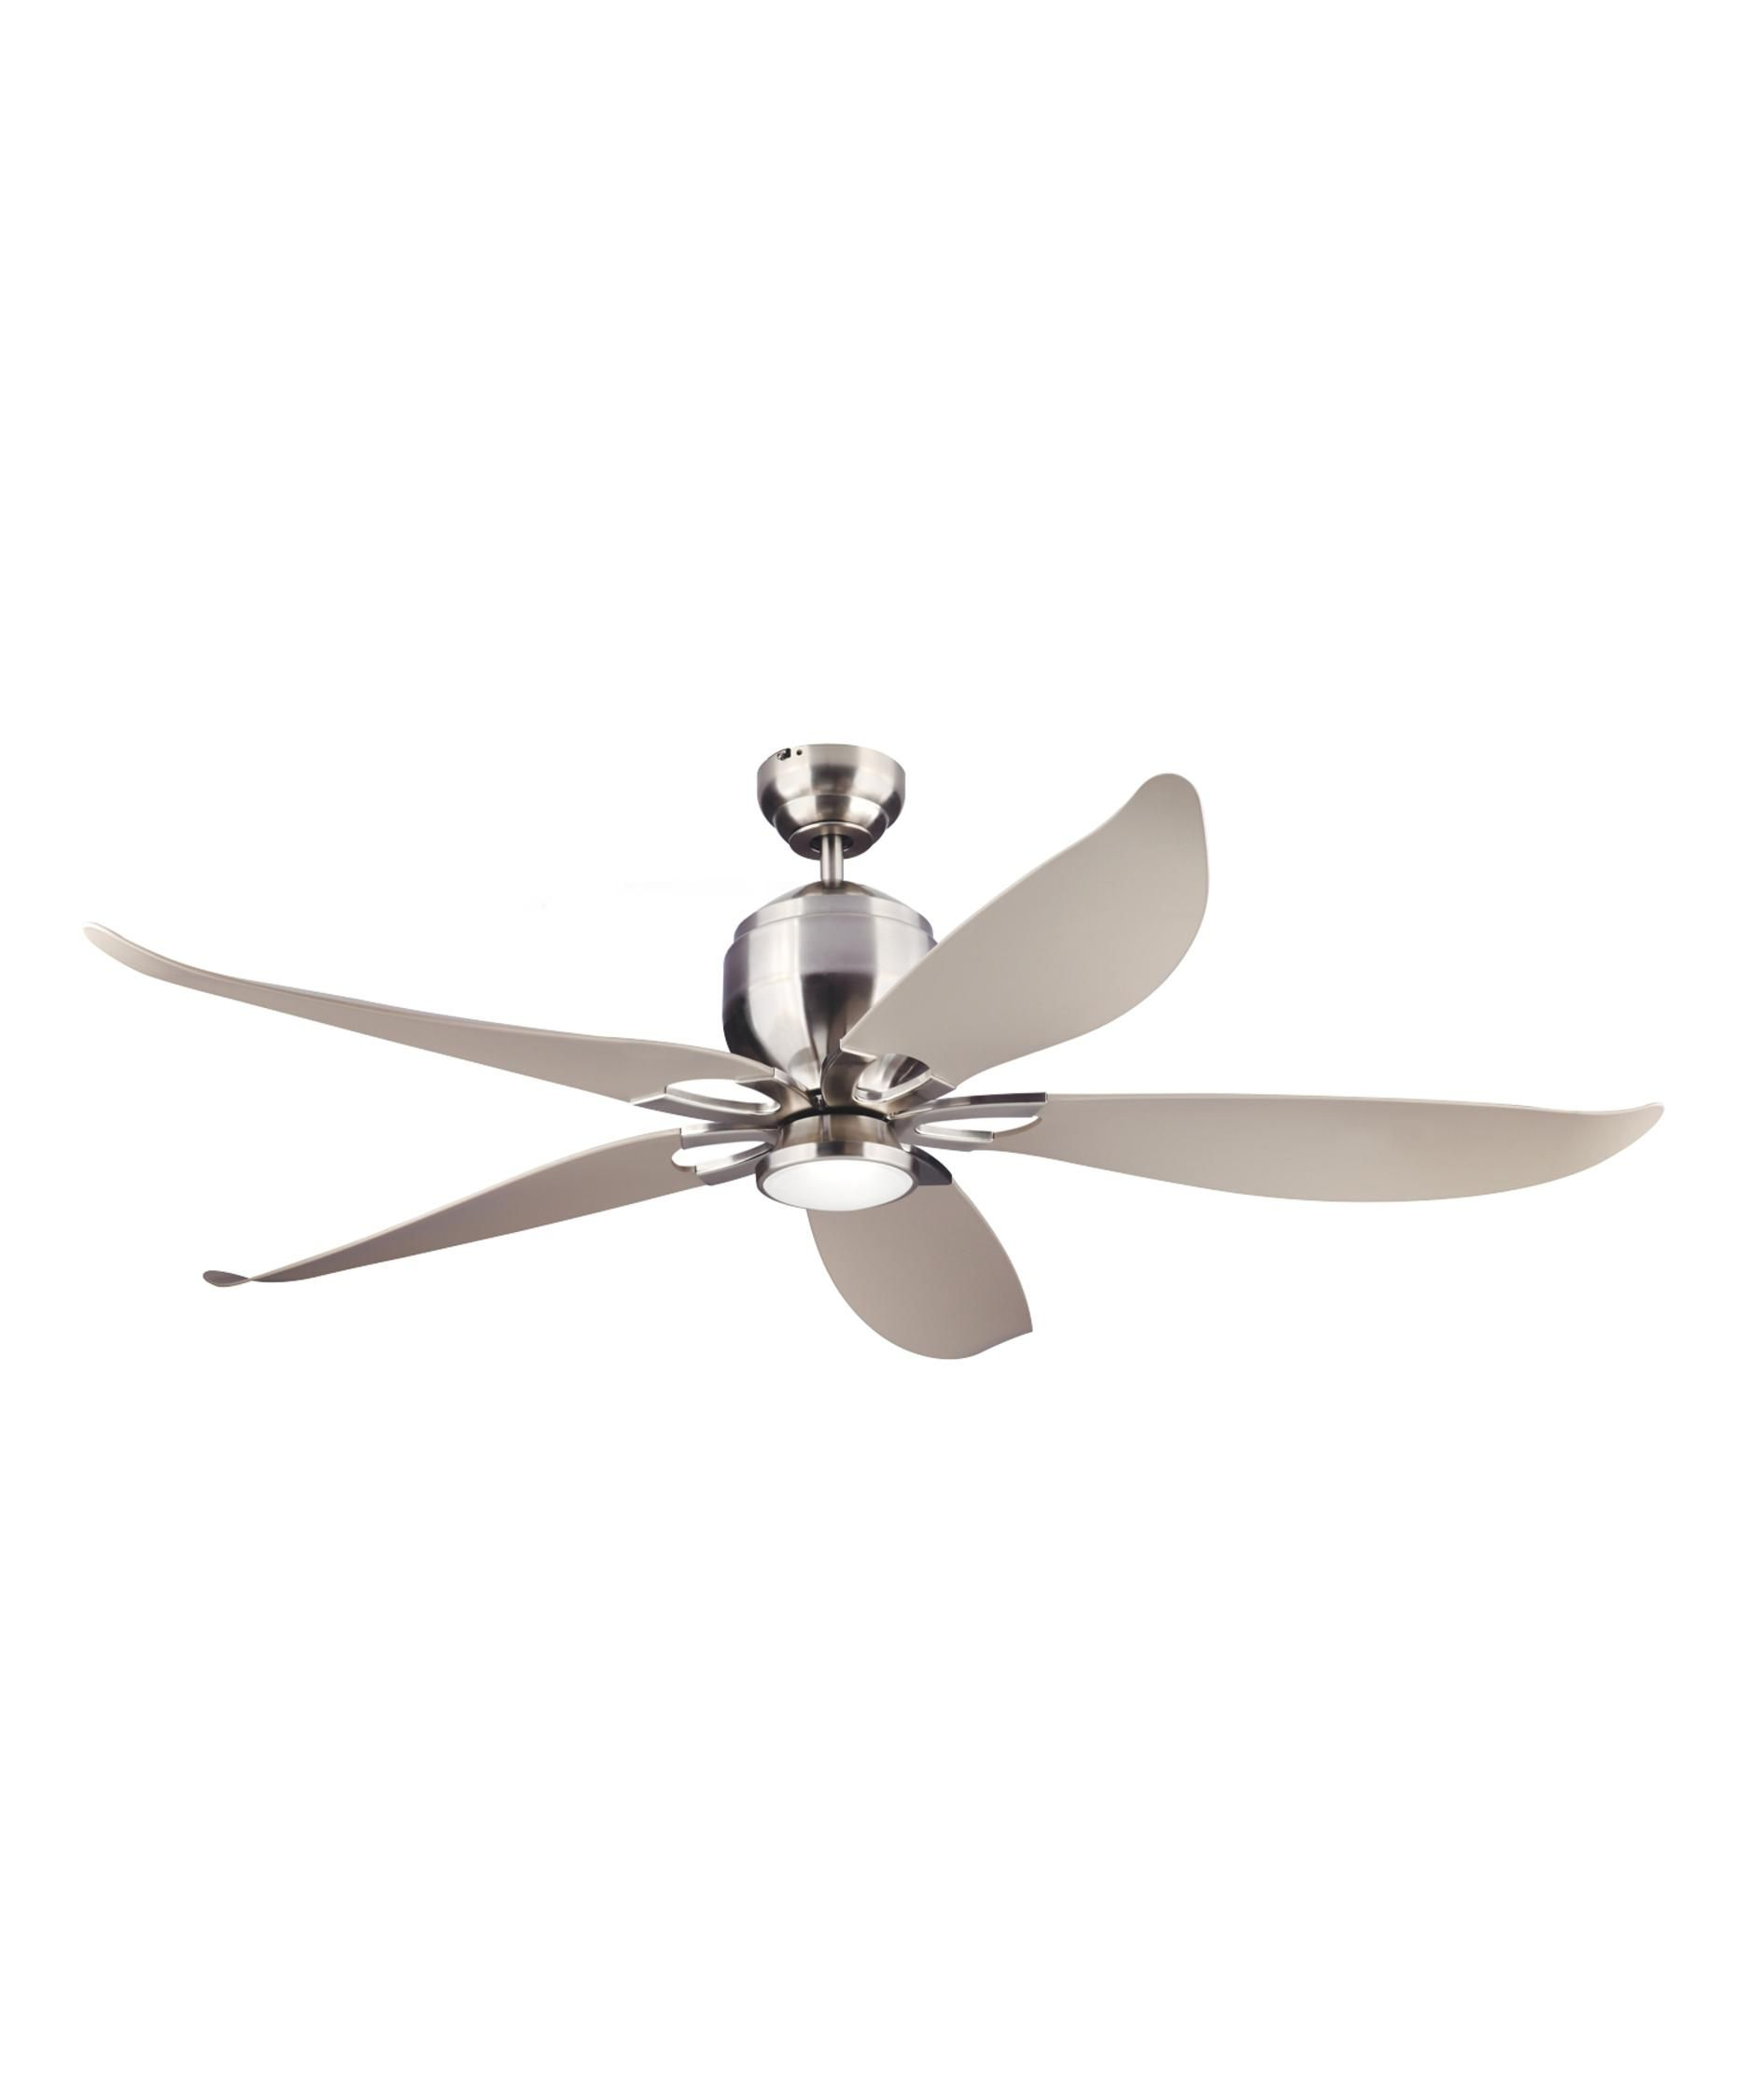 advantage grade tool ceiling fan equipment northern cfm ceilings fans down tools to exclusive tpi inch shop industrial category up draft